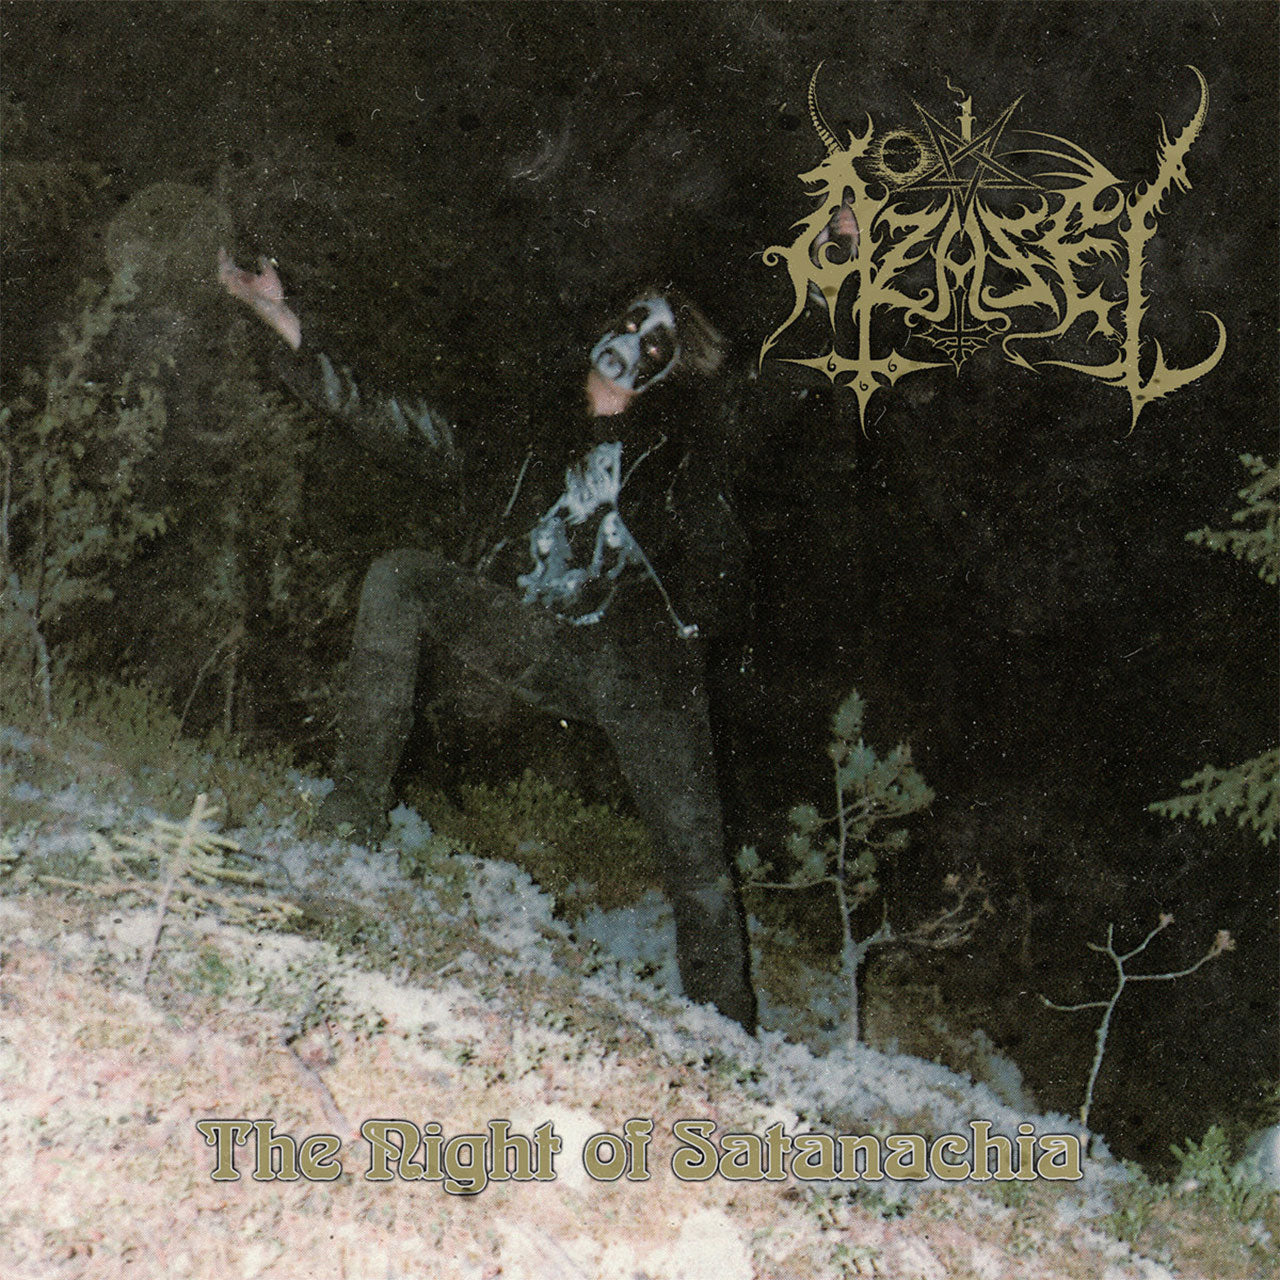 Azazel - The Night of Satanachia (2020 Reissue) (Digipak CD)